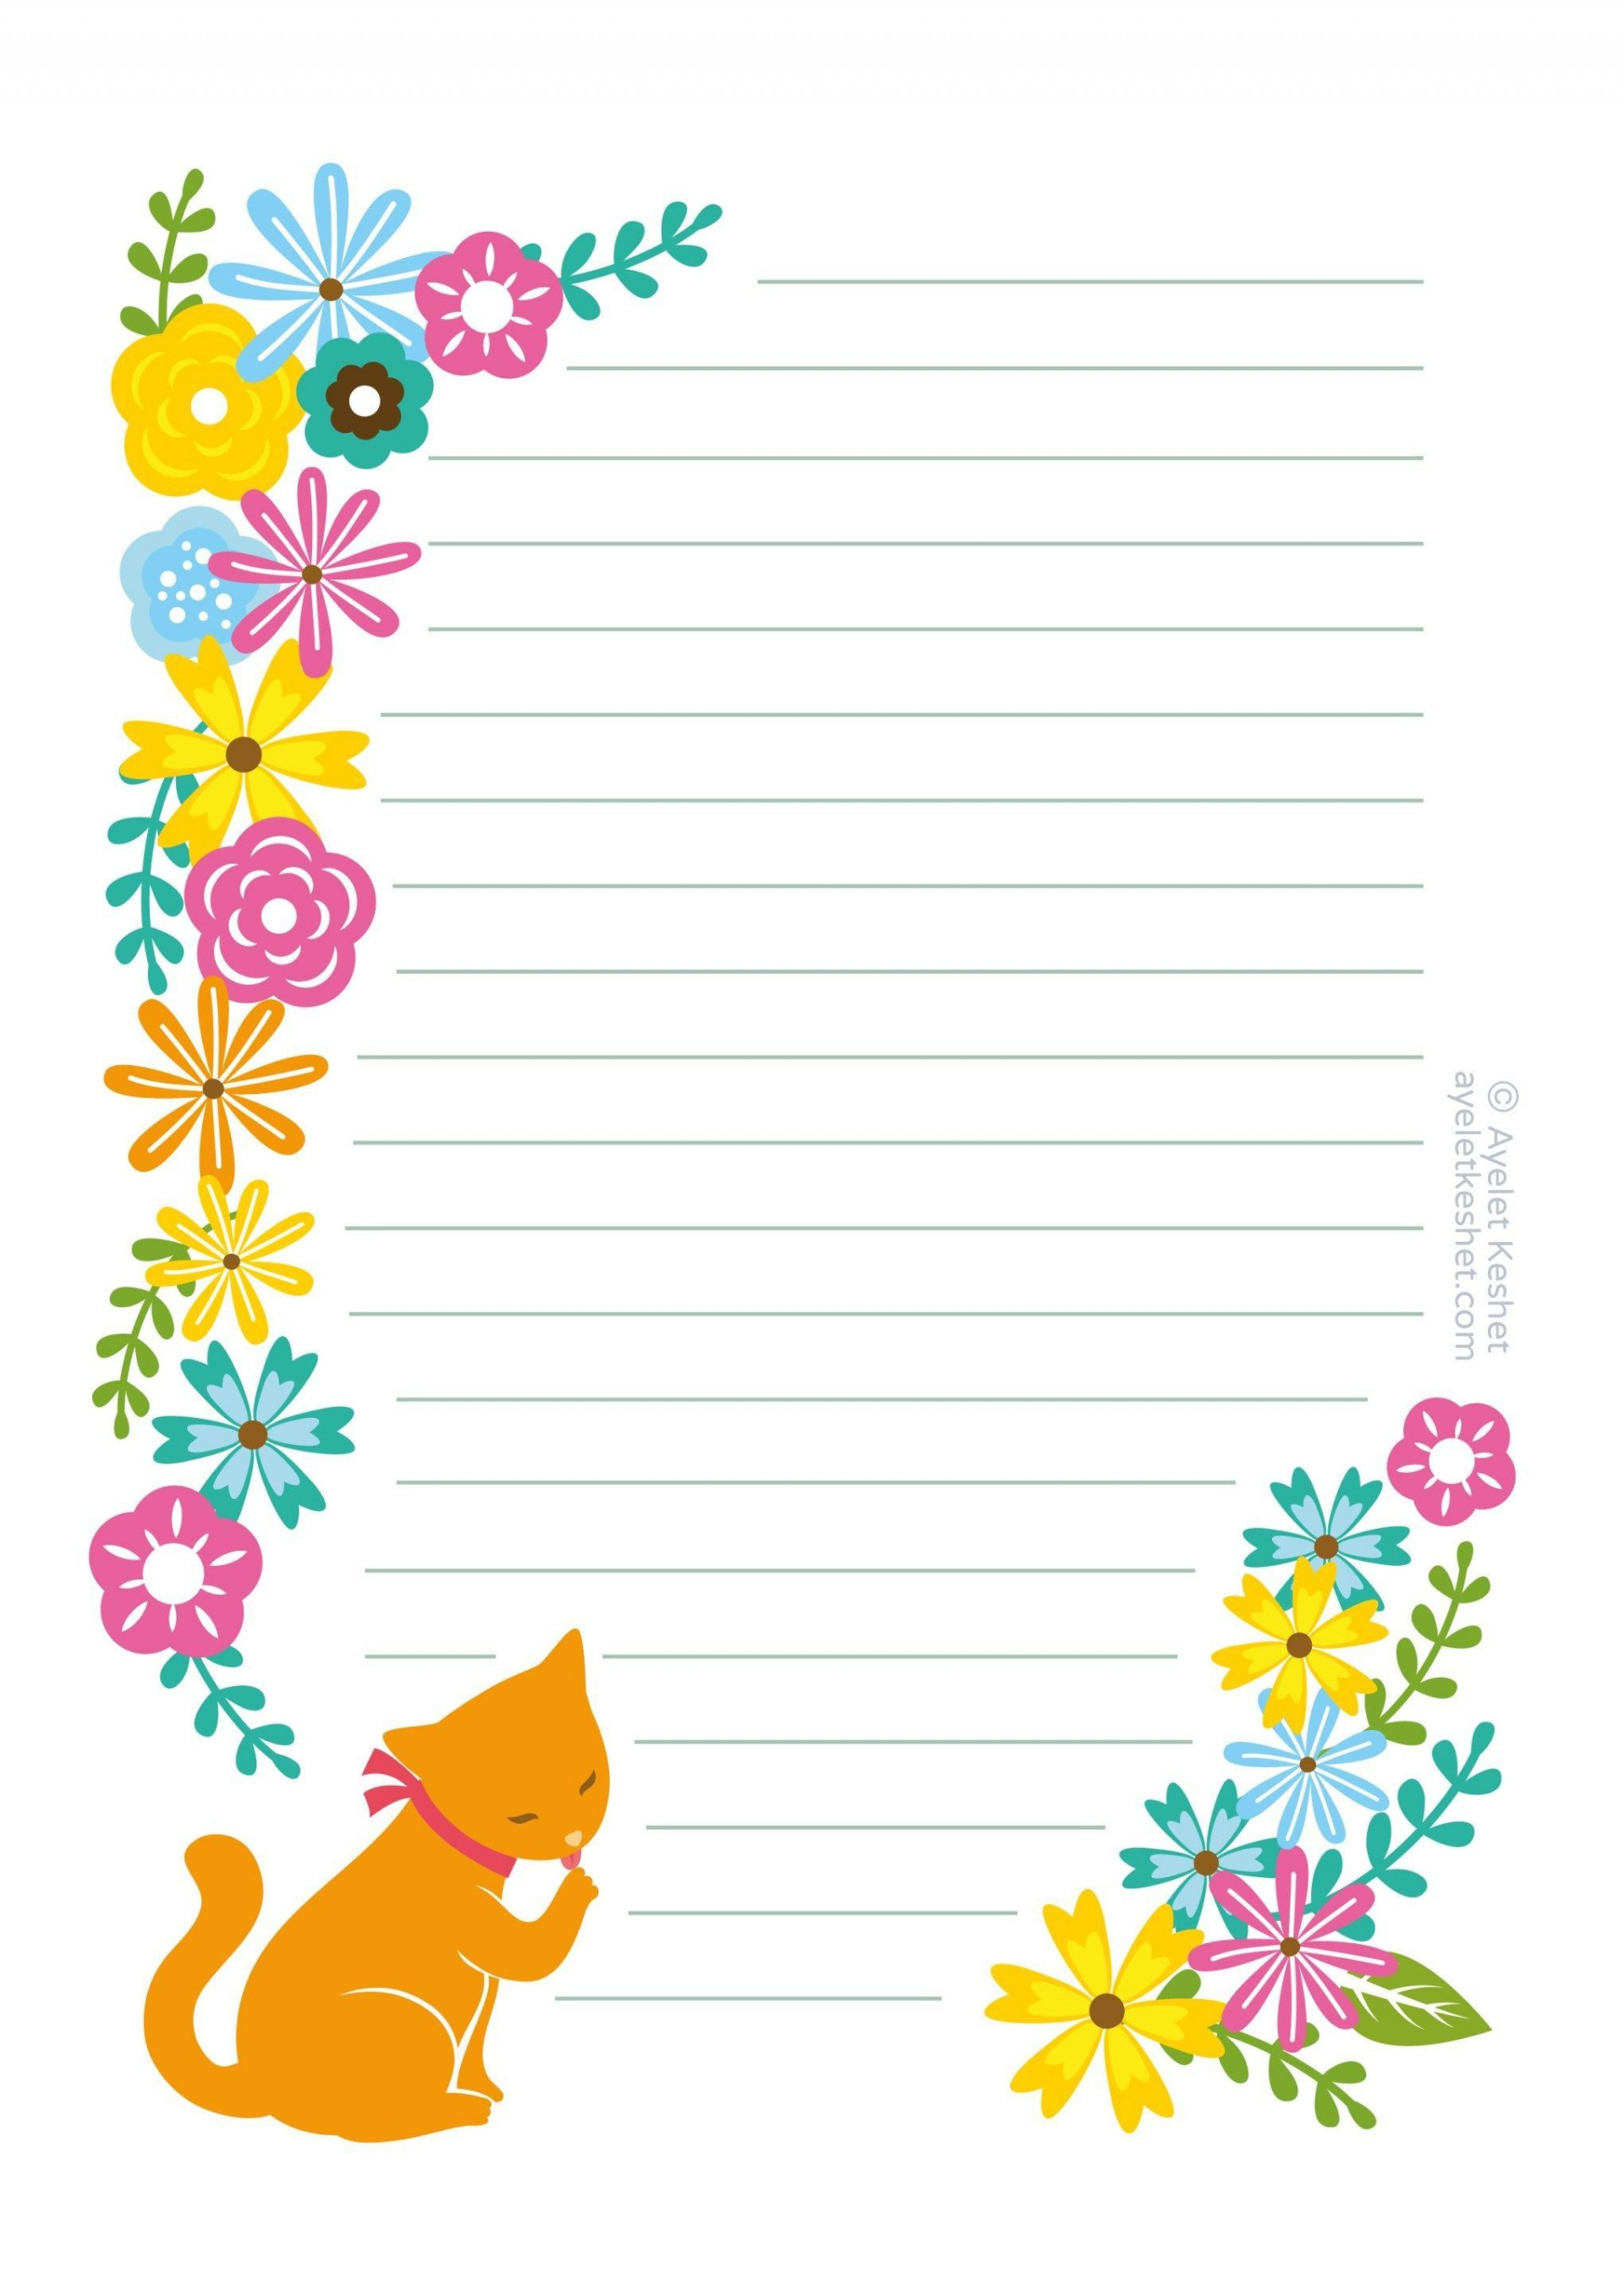 008 Unique Free Printable Stationery Paper Template Highest Clarity  Templates1920